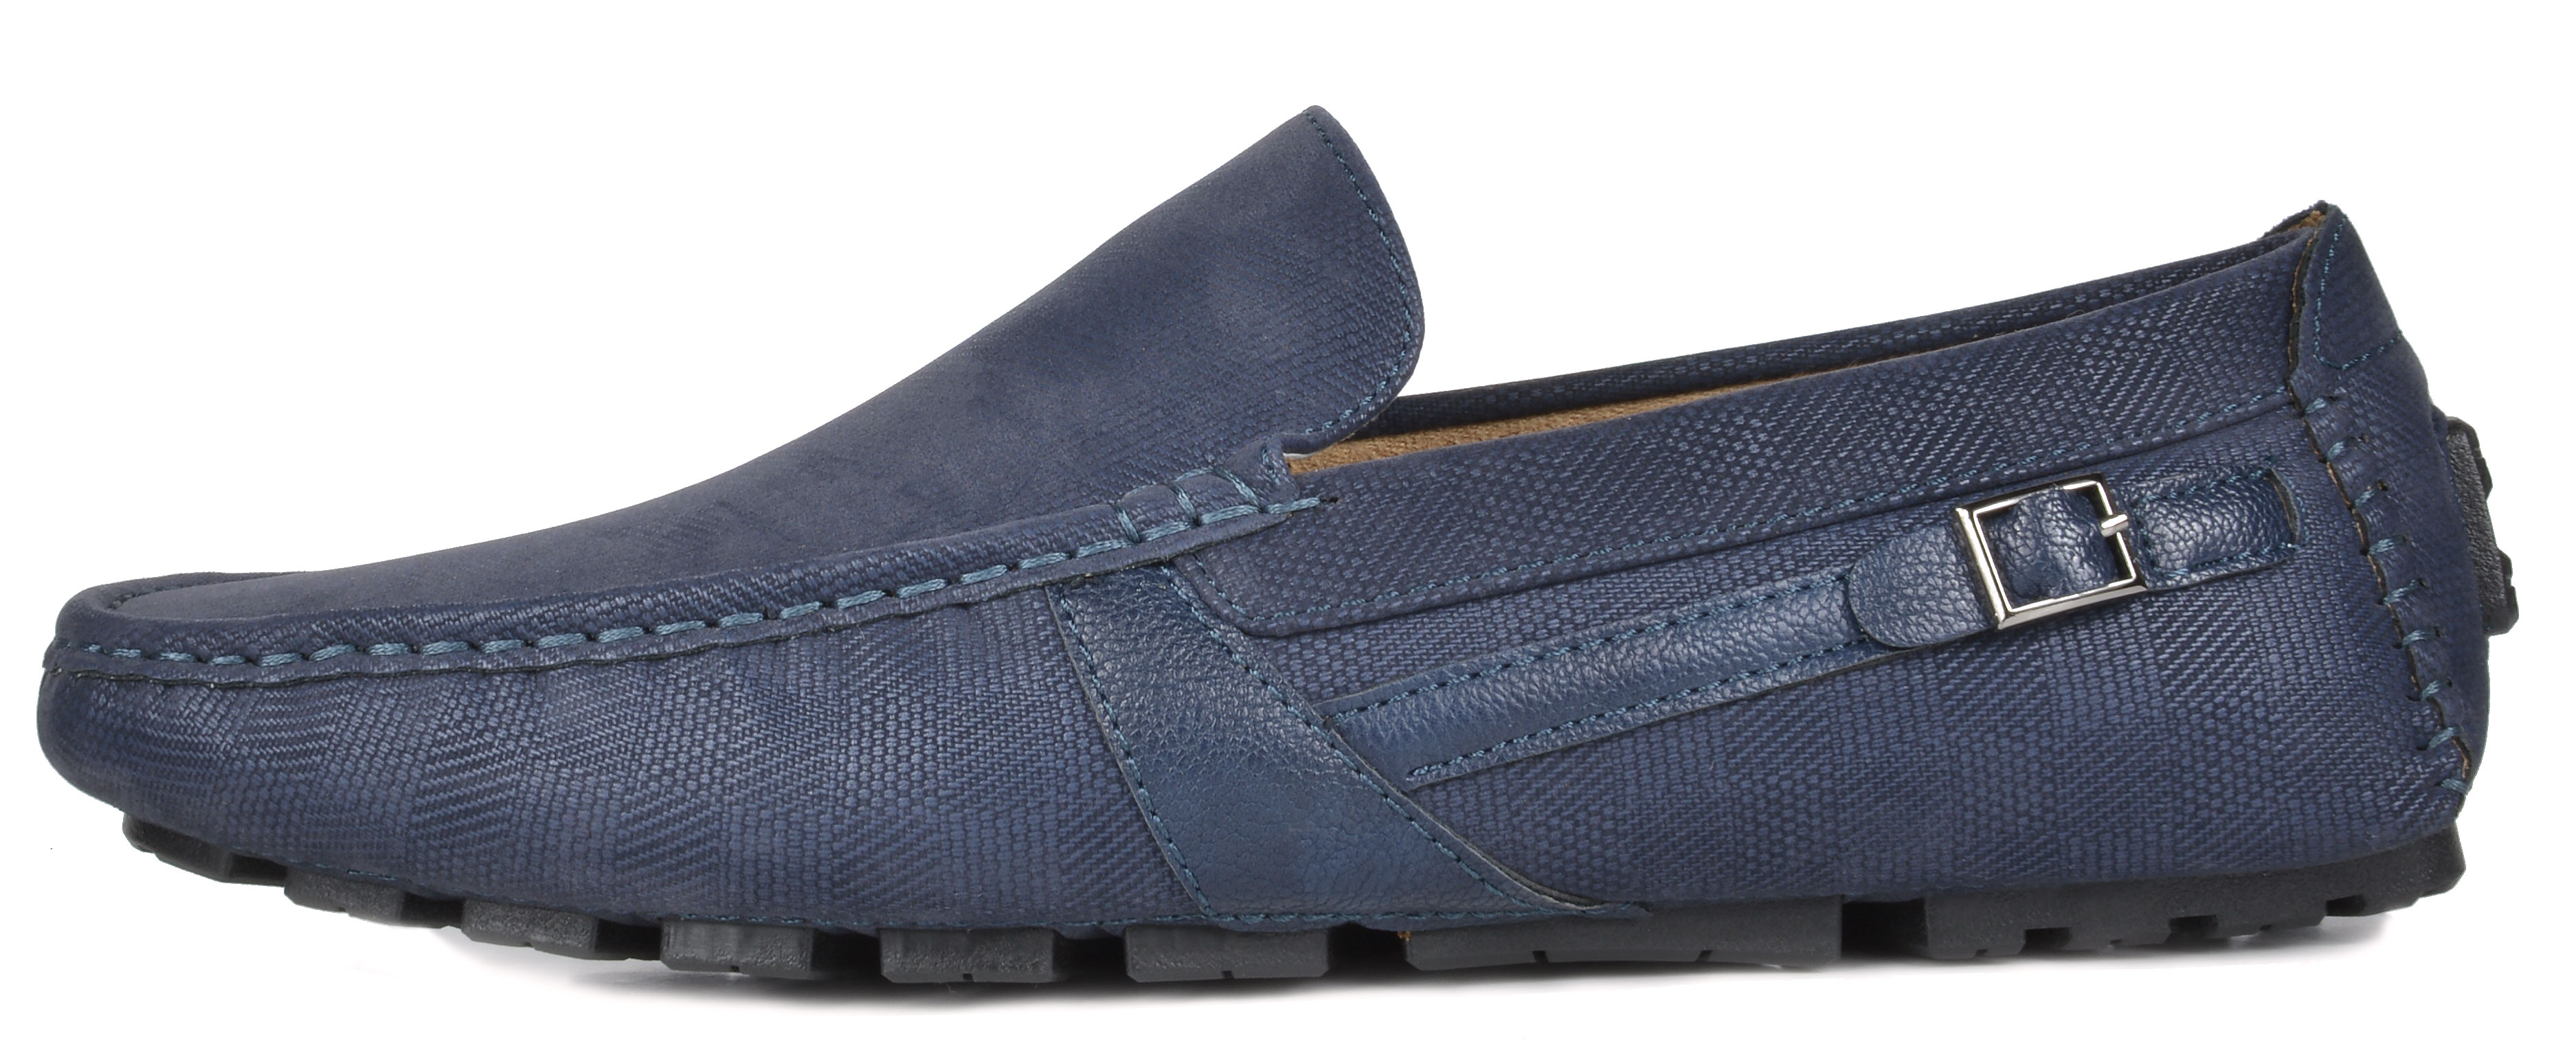 Bruno-Marc-Men-039-s-New-Classic-Fashion-Slip-on-Driving-Casual-Loafers-Boat-Shoes thumbnail 133